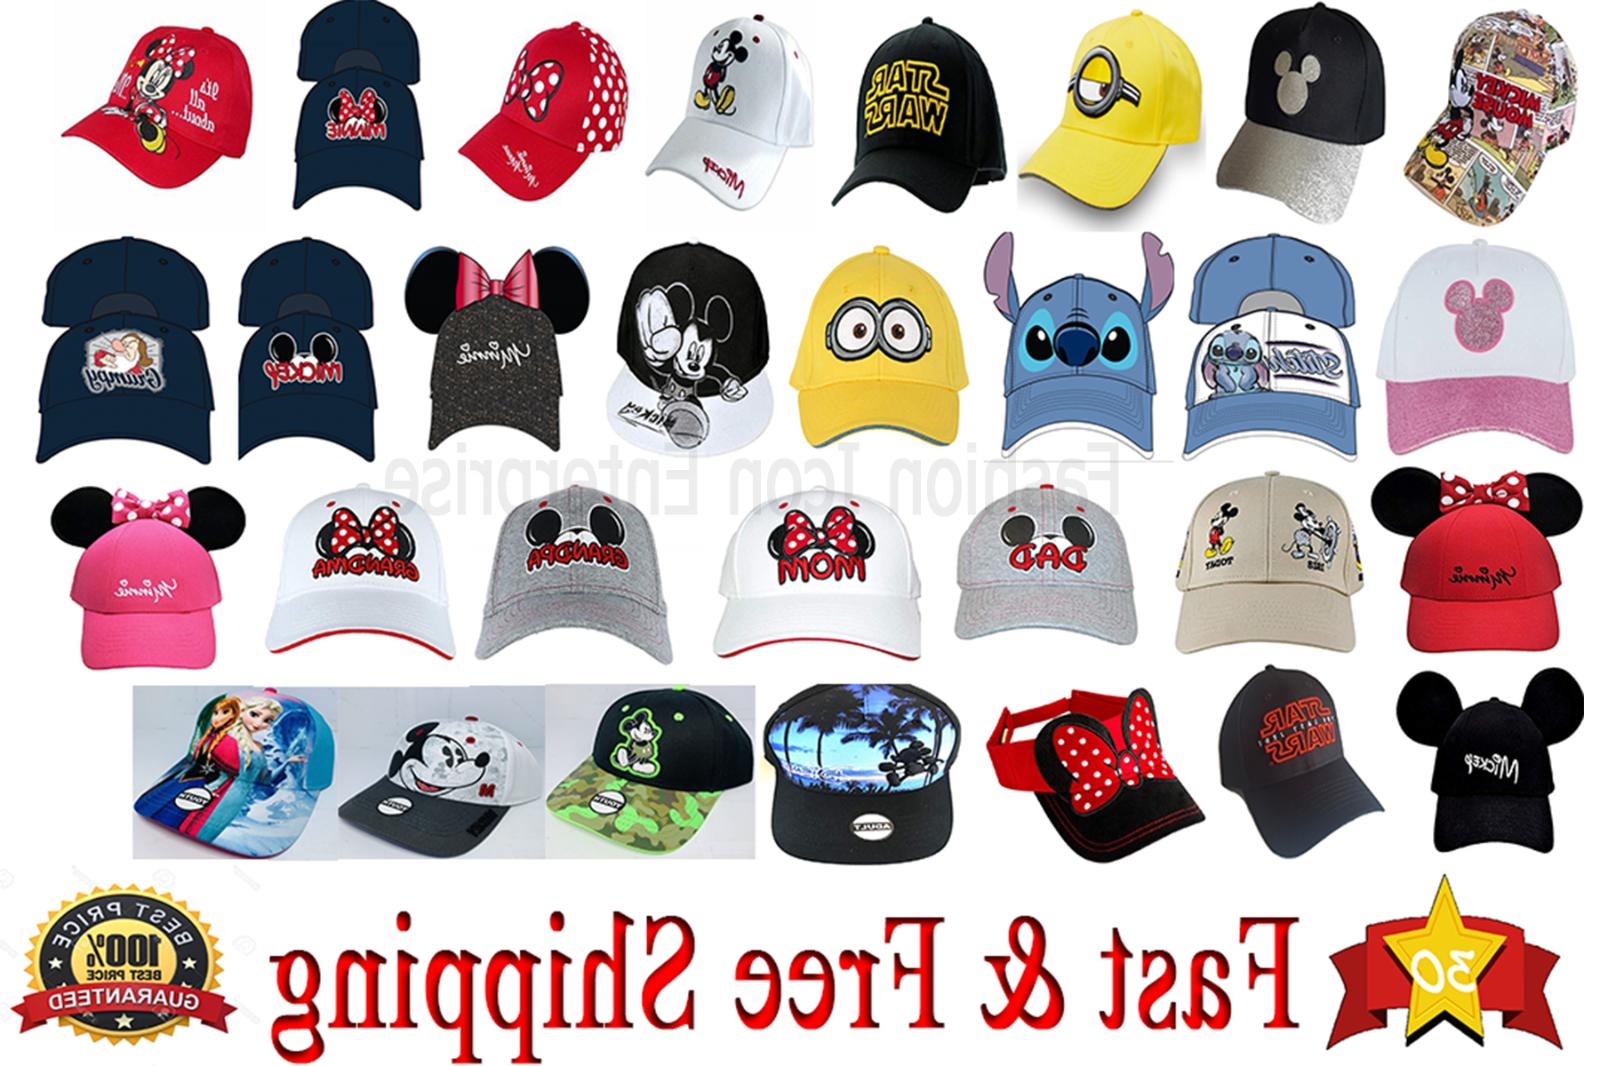 hats collection mickey and minnie hat star